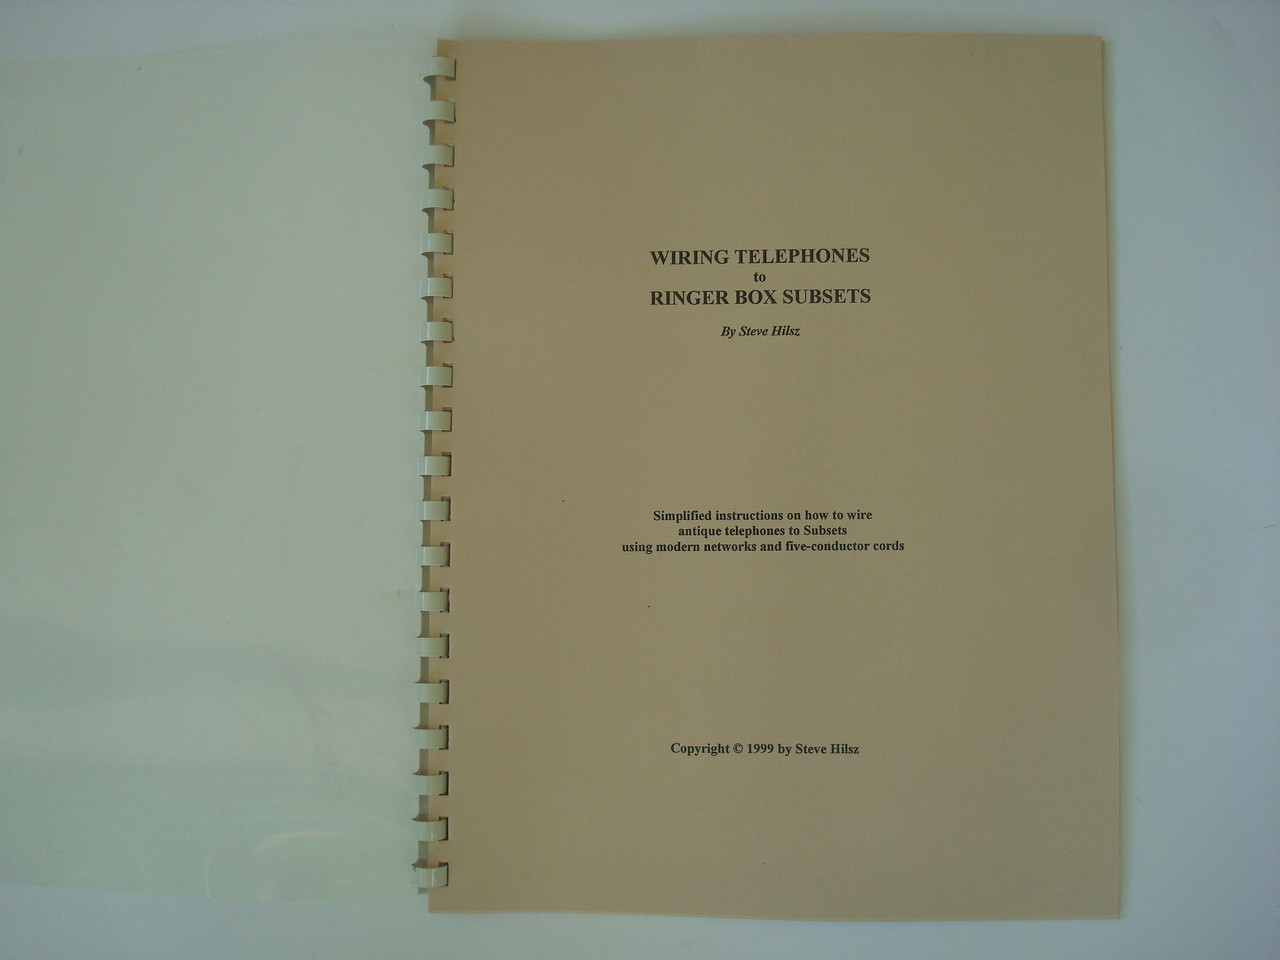 Antique Telephone Wiring Diagram Book Wiring Telephones To